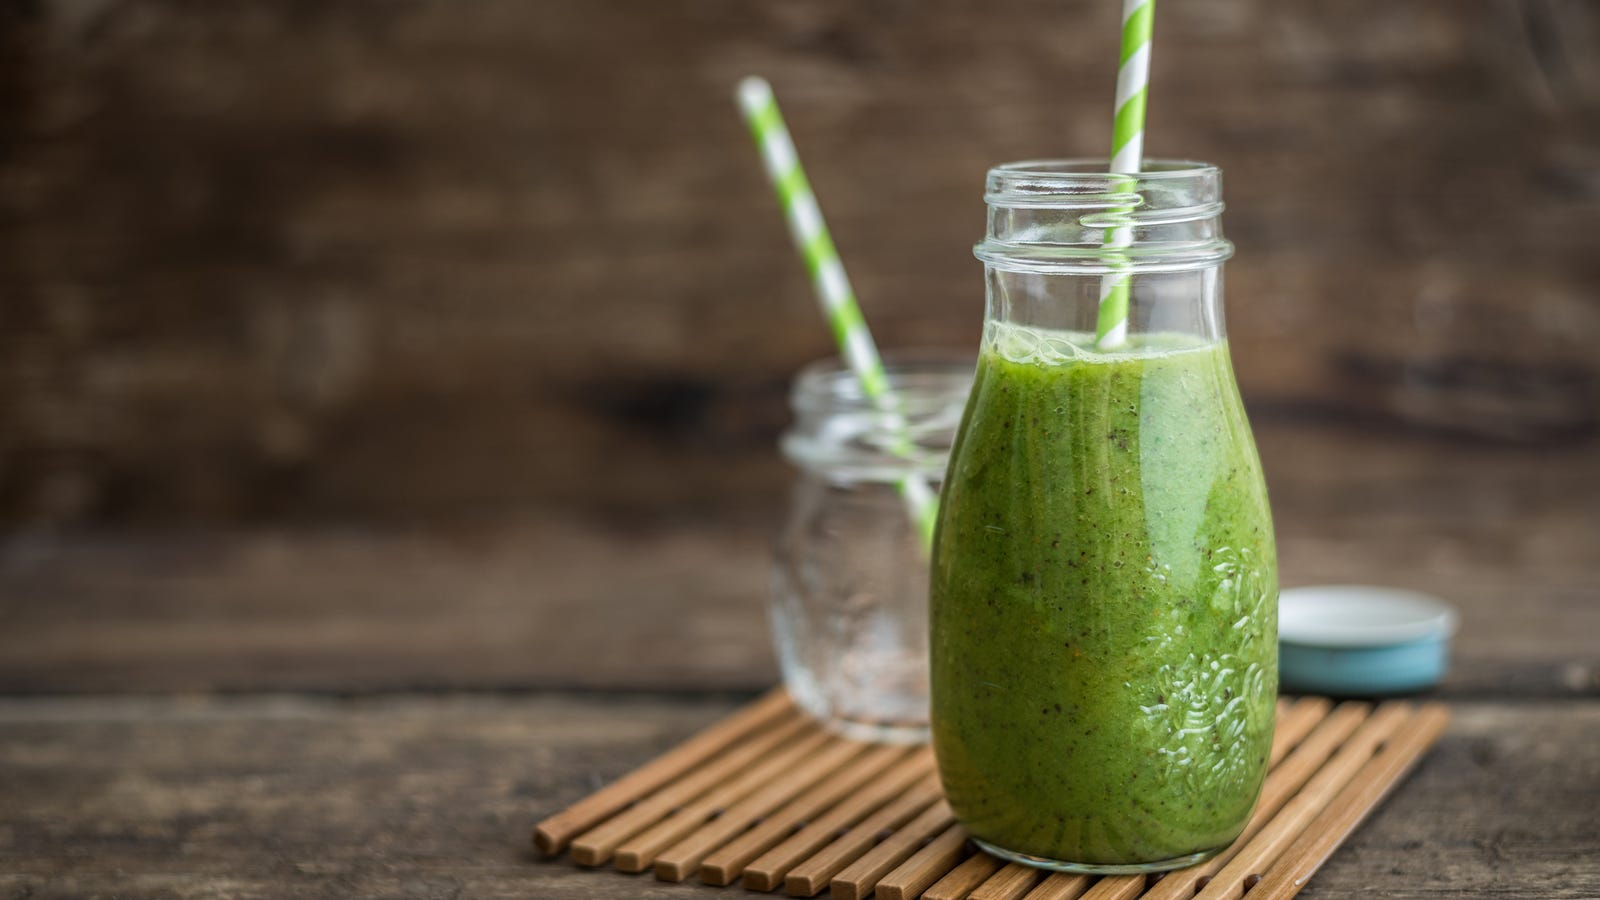 Make Buncha Crap Green Smoothie and save yourself a buncha green